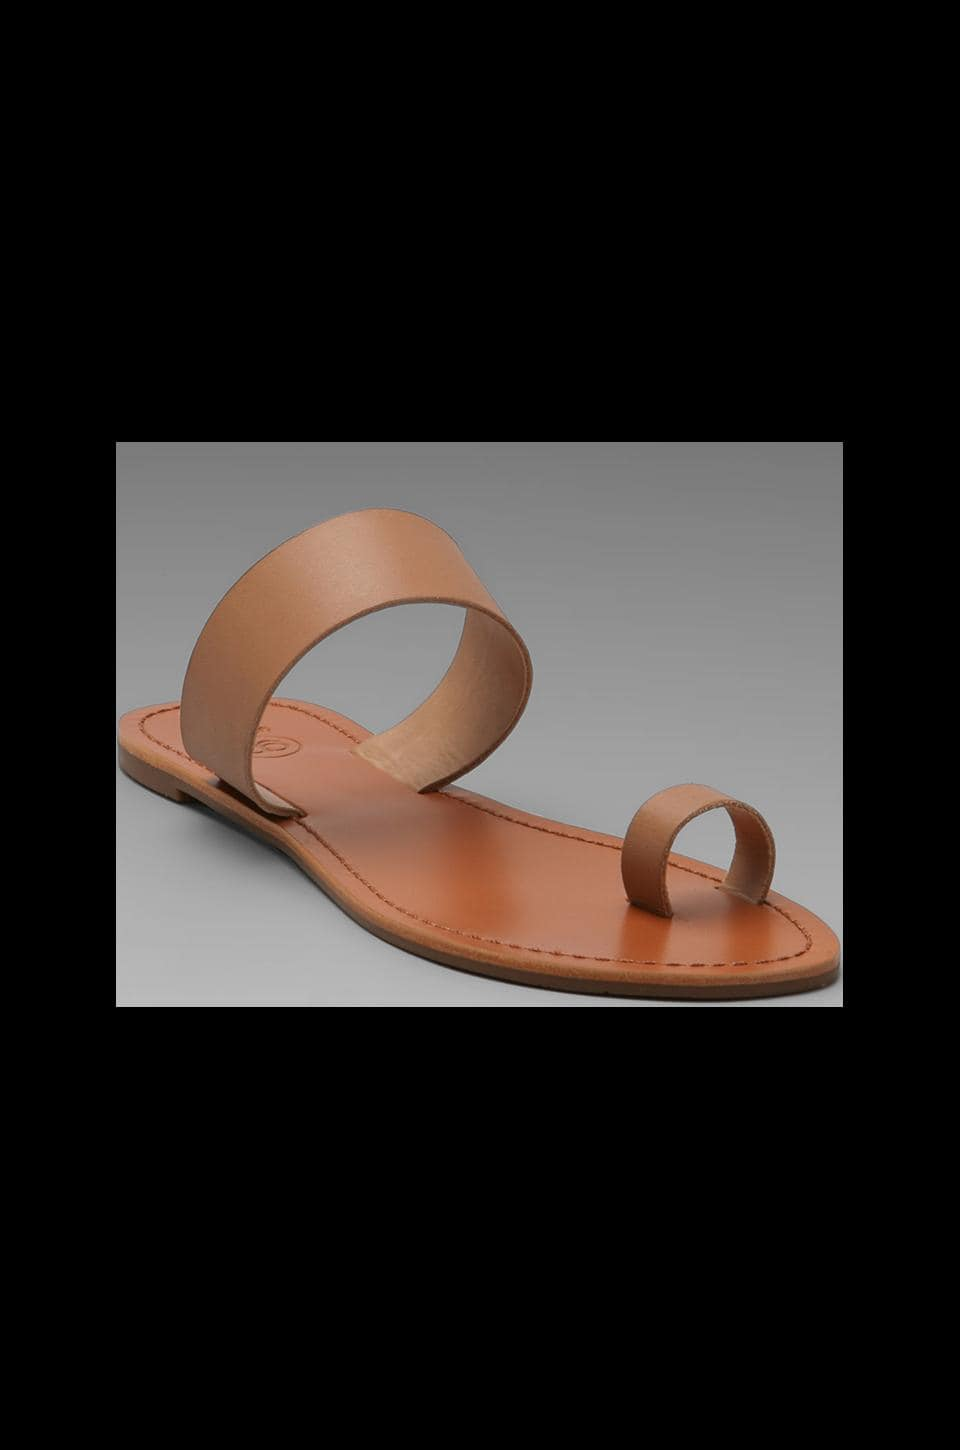 gorjana Del Mar Leather Sandal in Macaroon